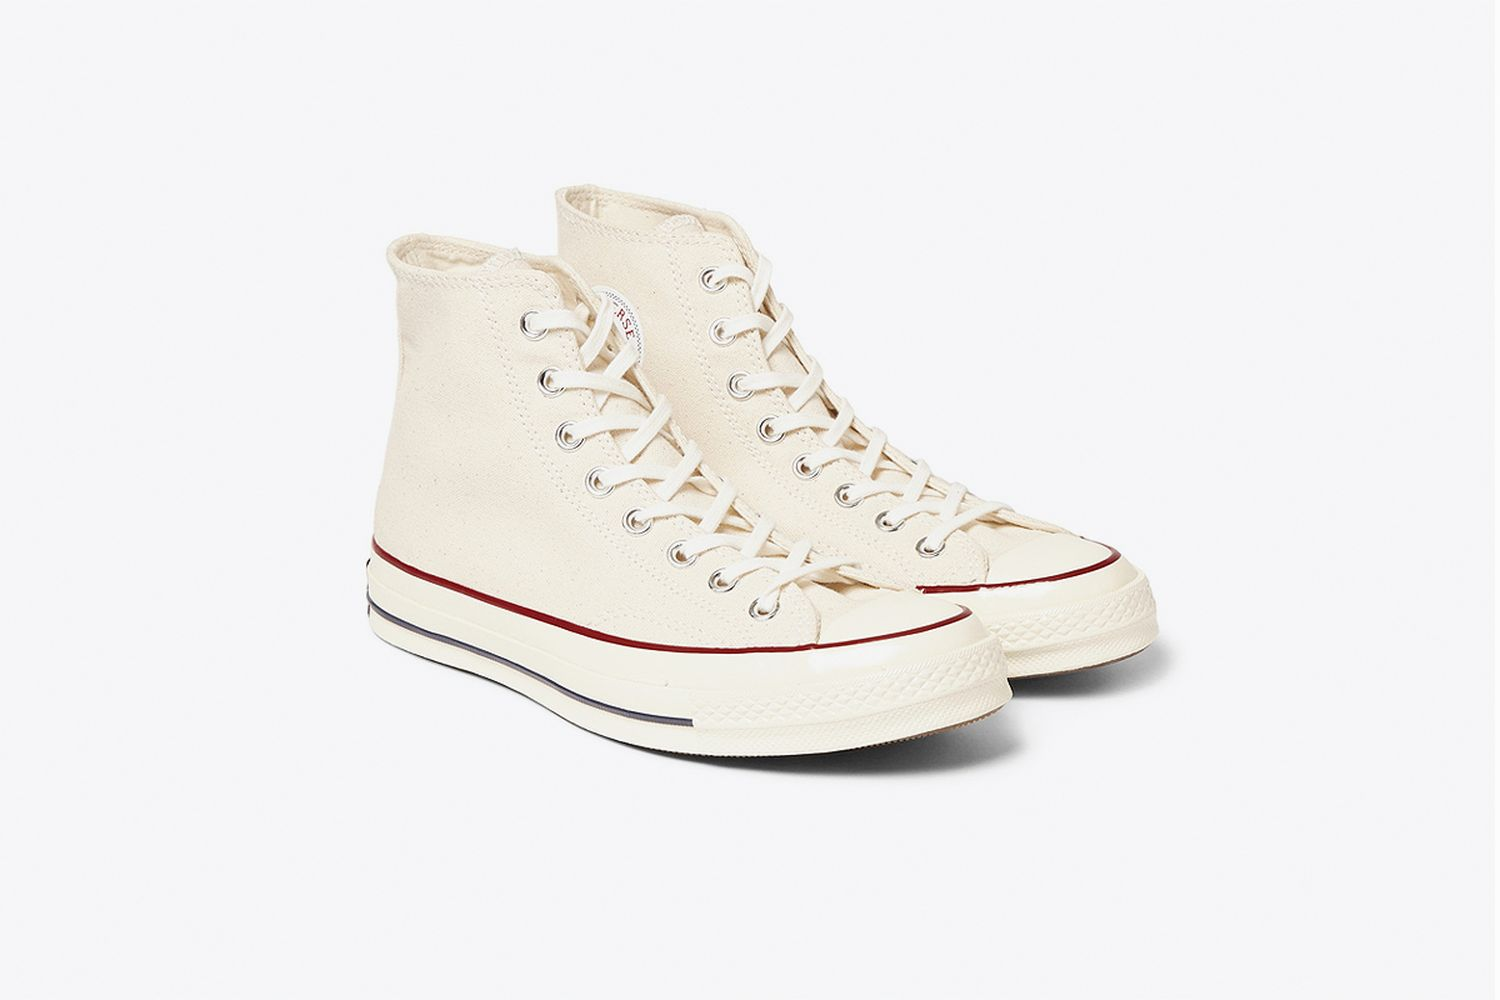 1970s Chuck Taylor Sneakers